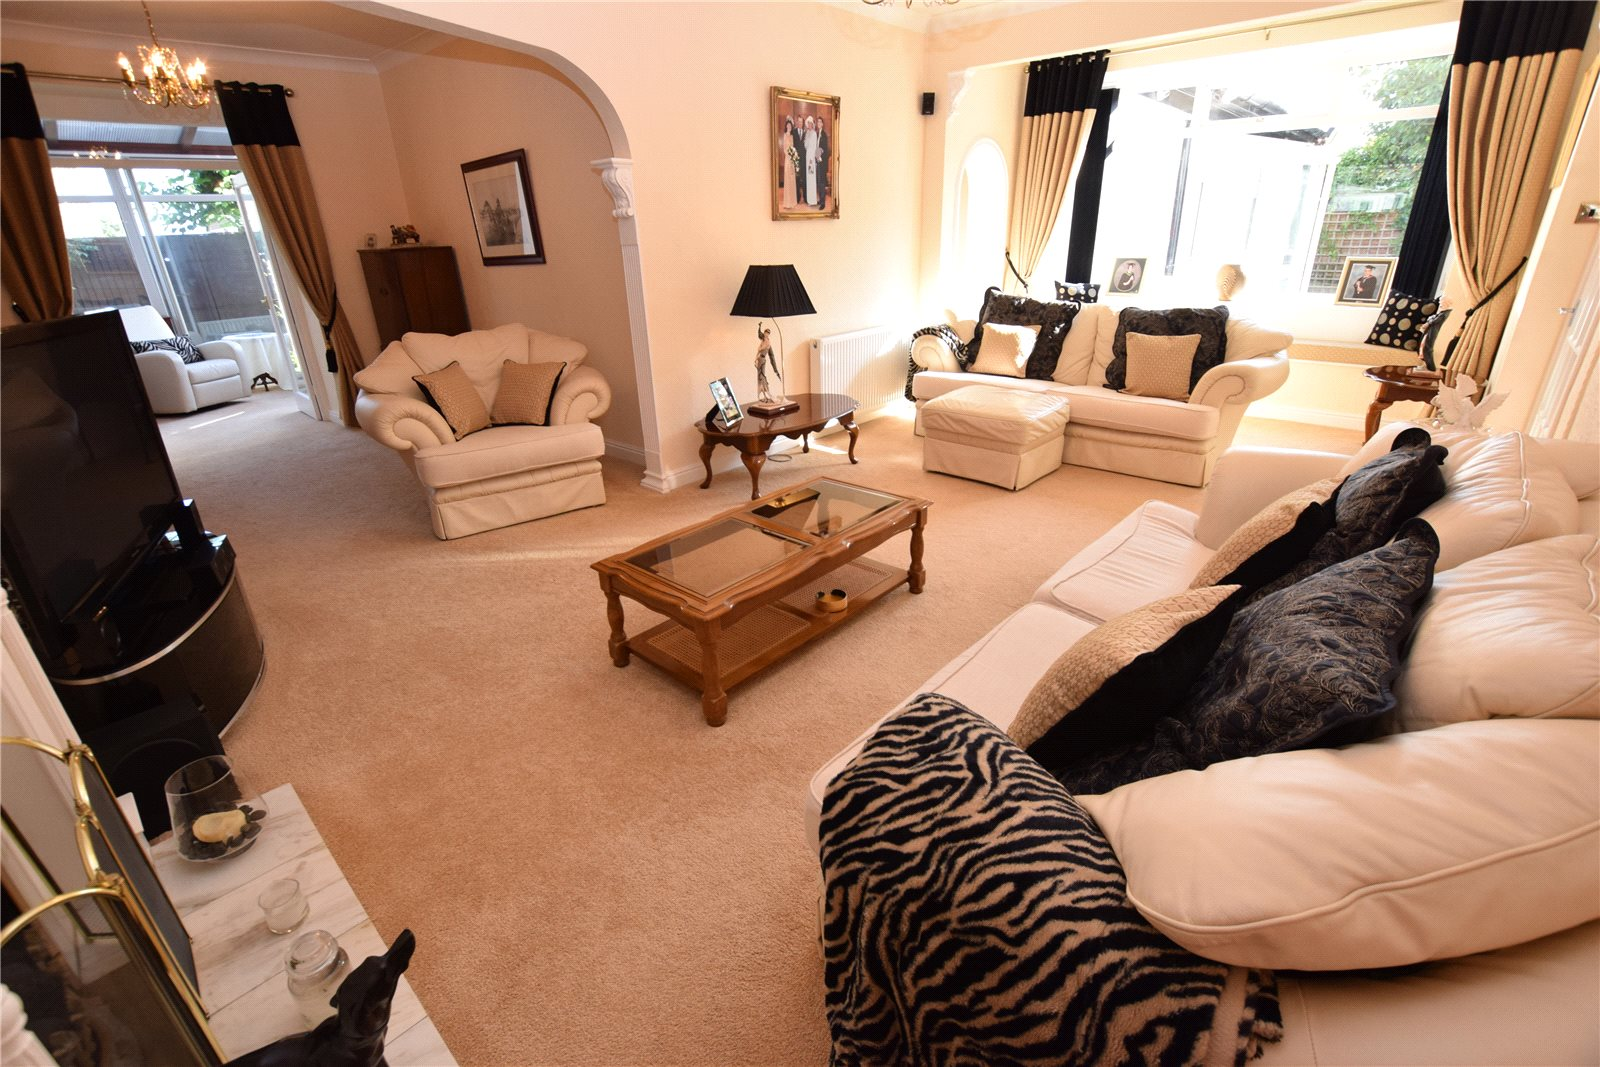 Property for sale in Wortley, Living room, spacious and white decor